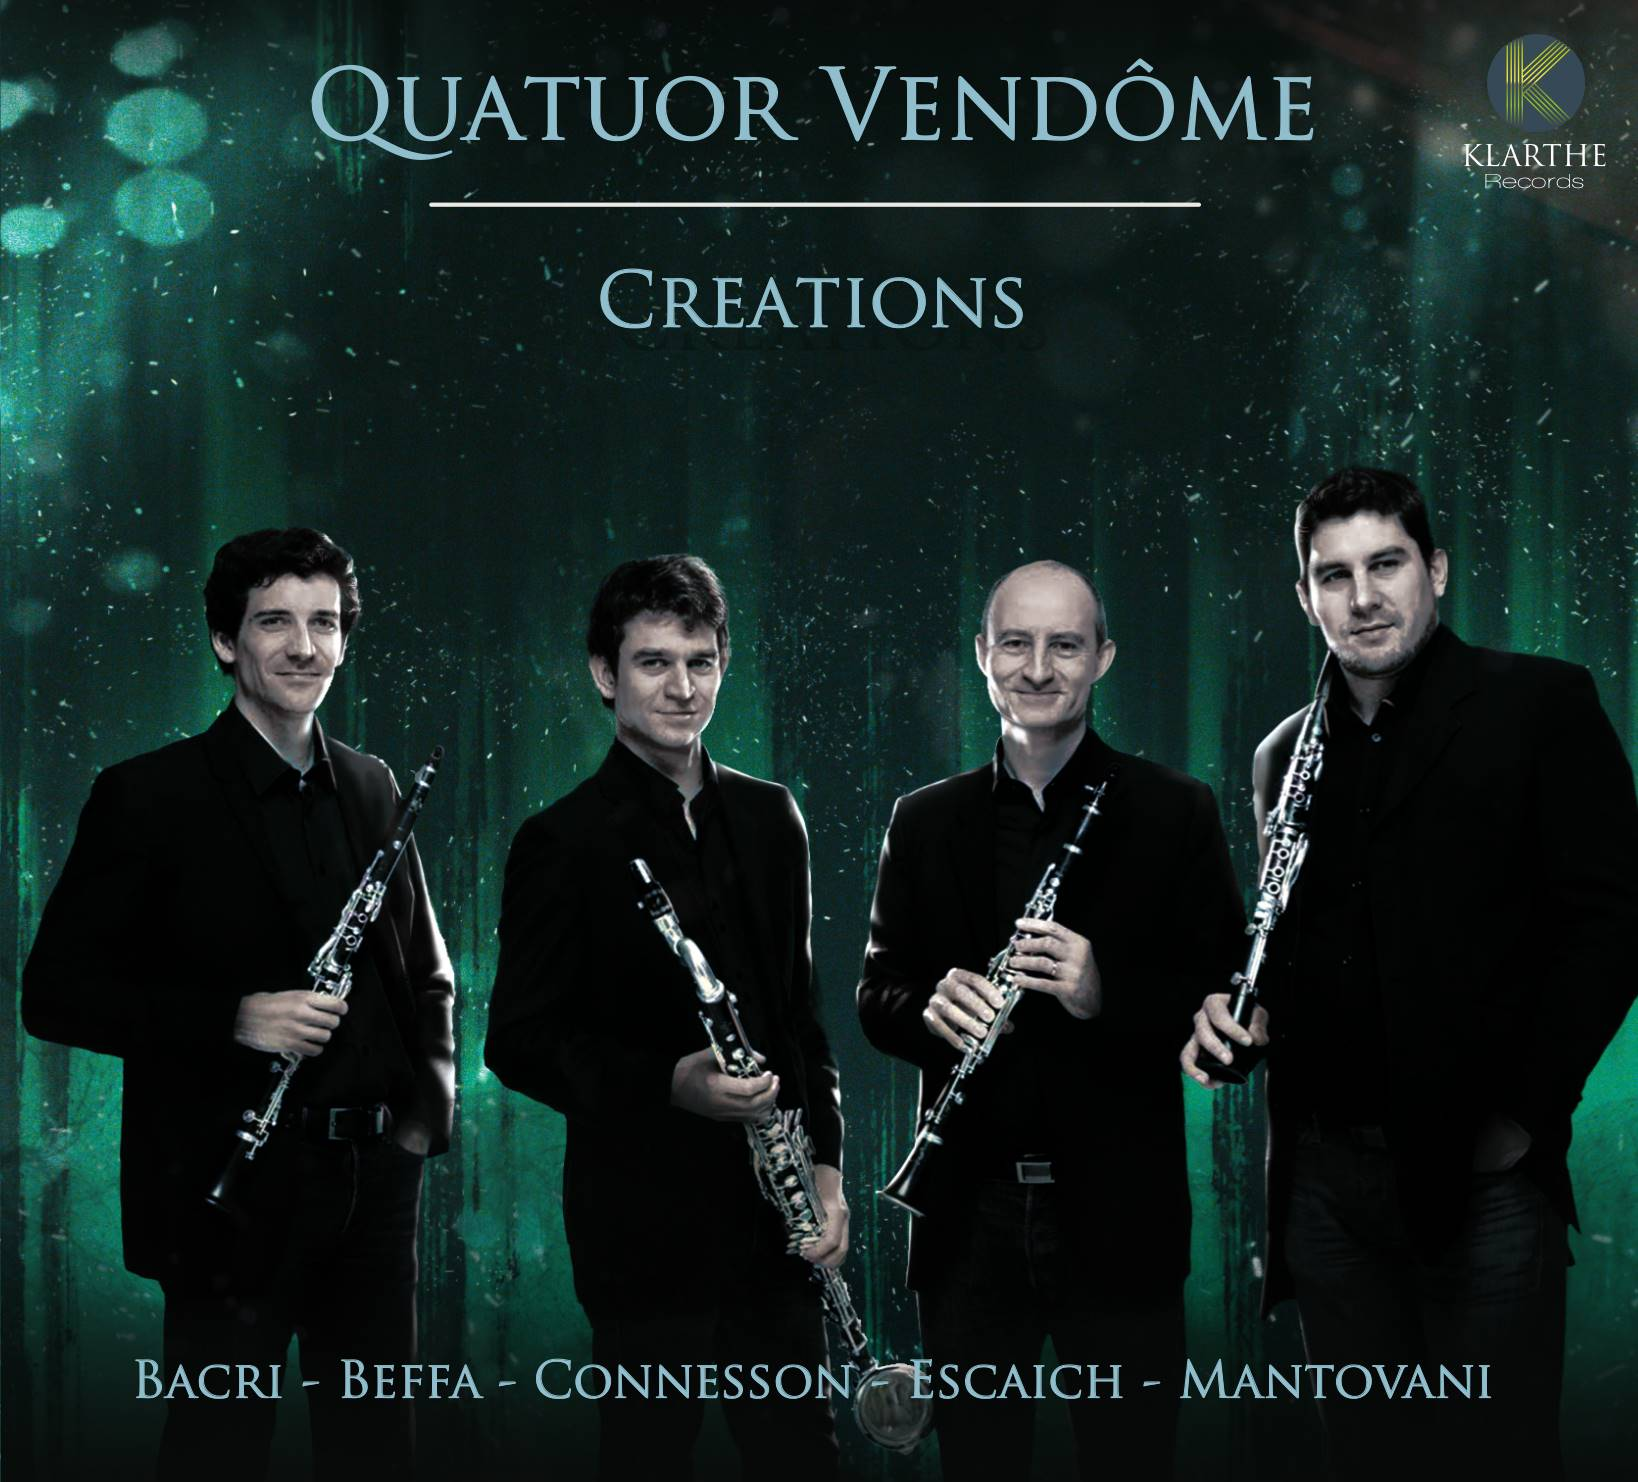 creation quatuor de vendome clarinette cd review critique cd par classiquenews kla046couv_low